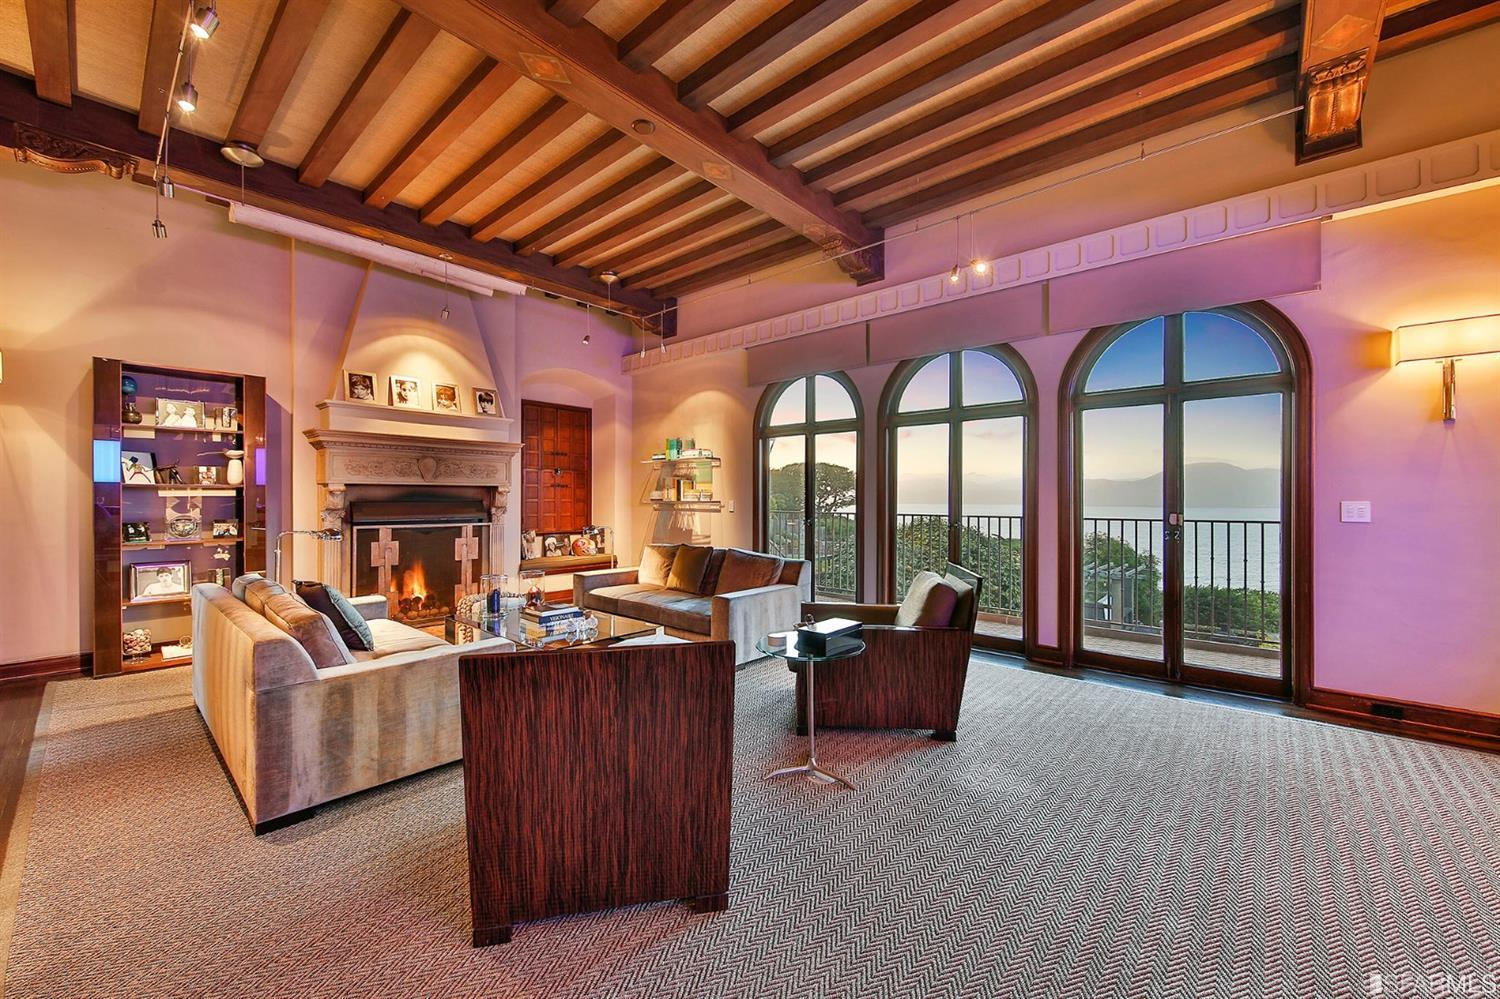 Twilight gives so many different hues to this room creating a magical feel.